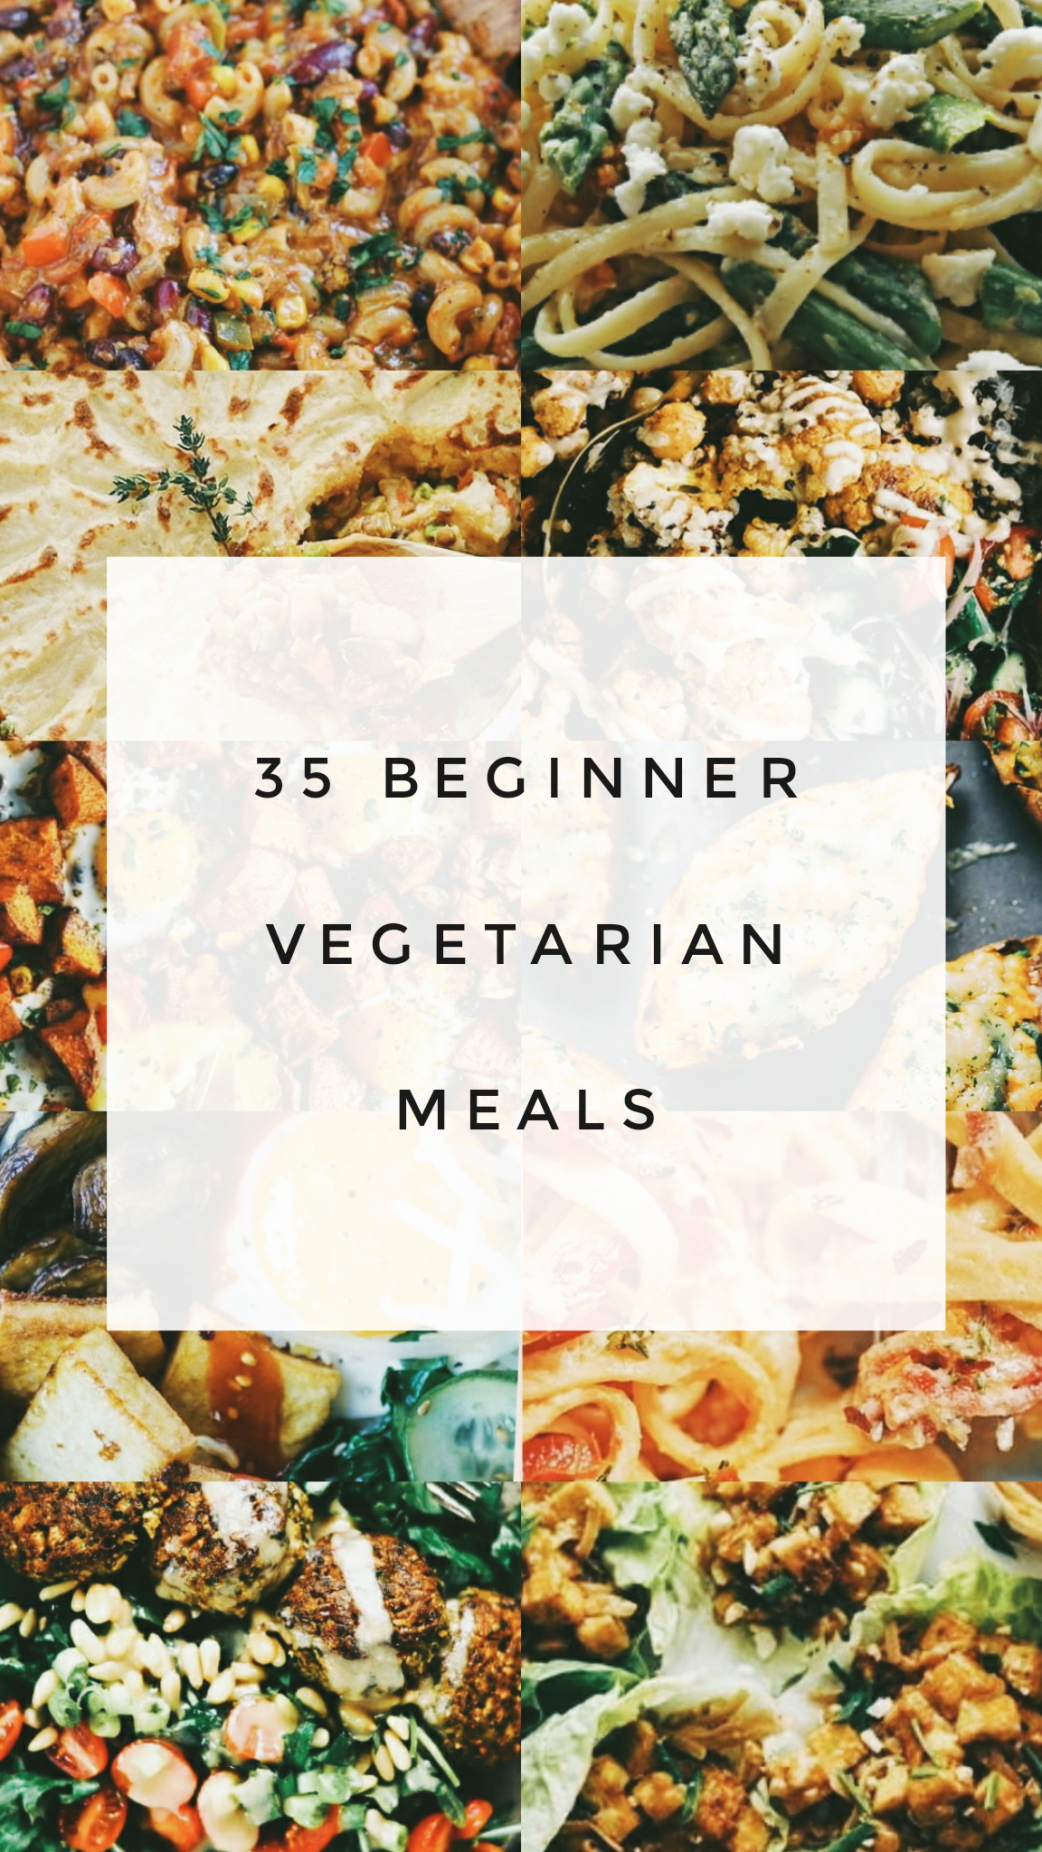 25 Beginner Vegetarian Meals: Veggie Yum | Decor Dolphin